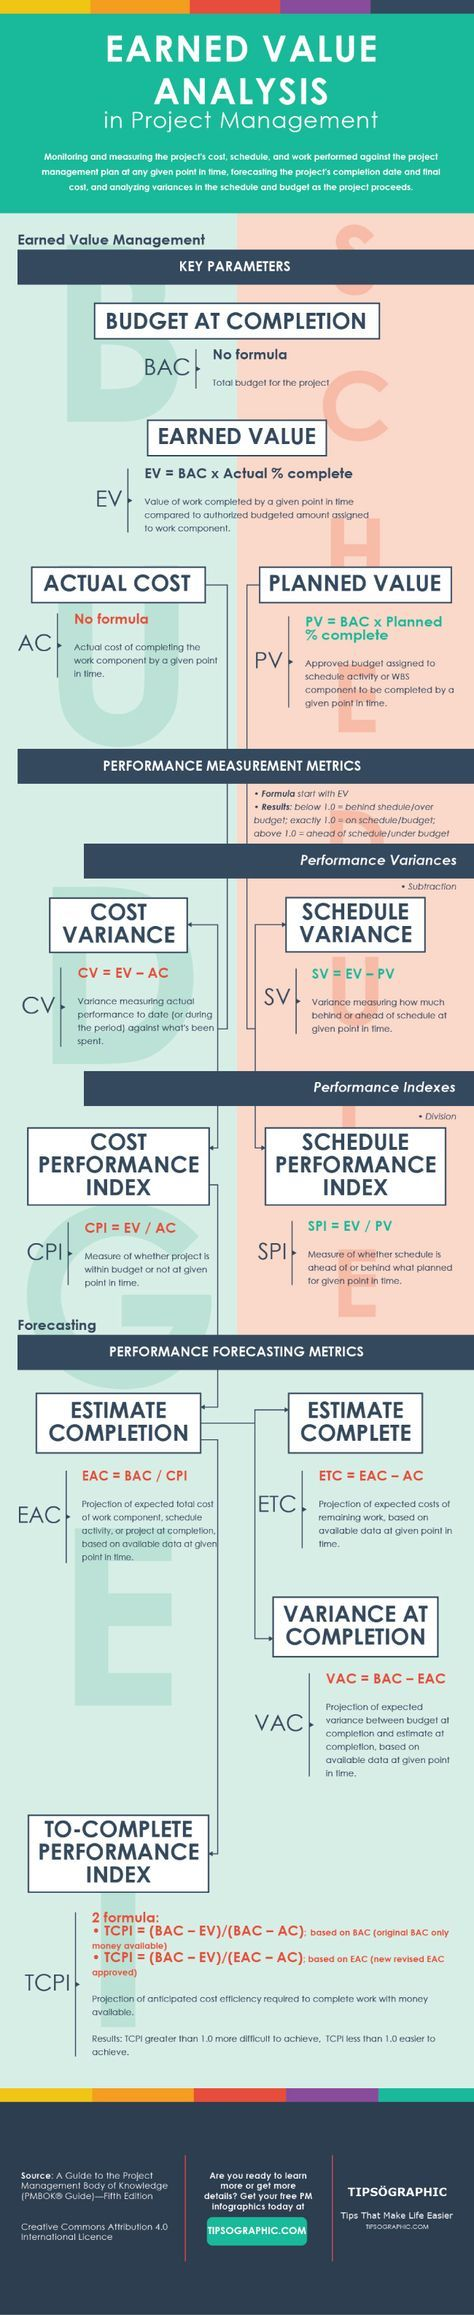 Earned Value Analysis In Project Management The Ultimate Cheat